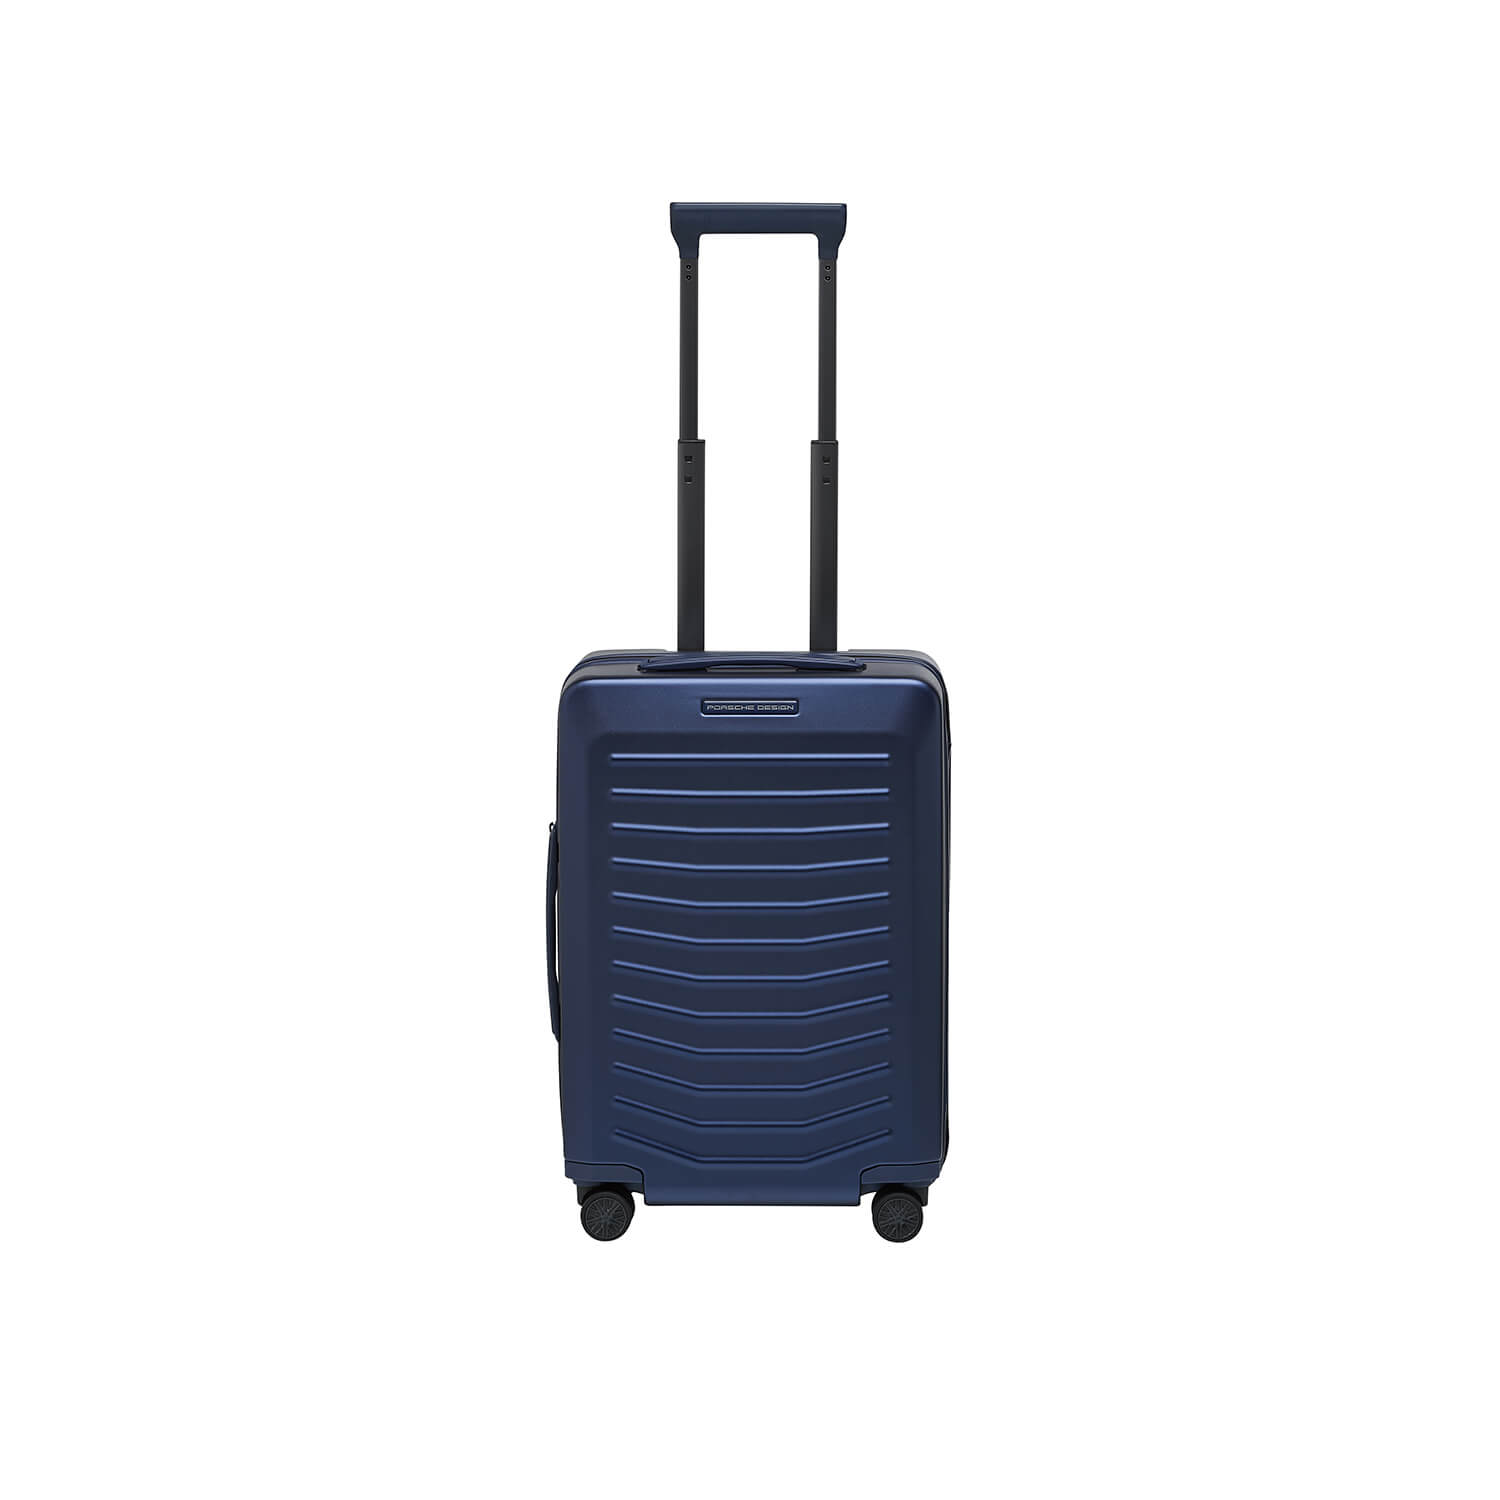 "Porsche Roadster Hardcase Spinner by Brics (Color: Dark Blue Matte, Size: 21"")"